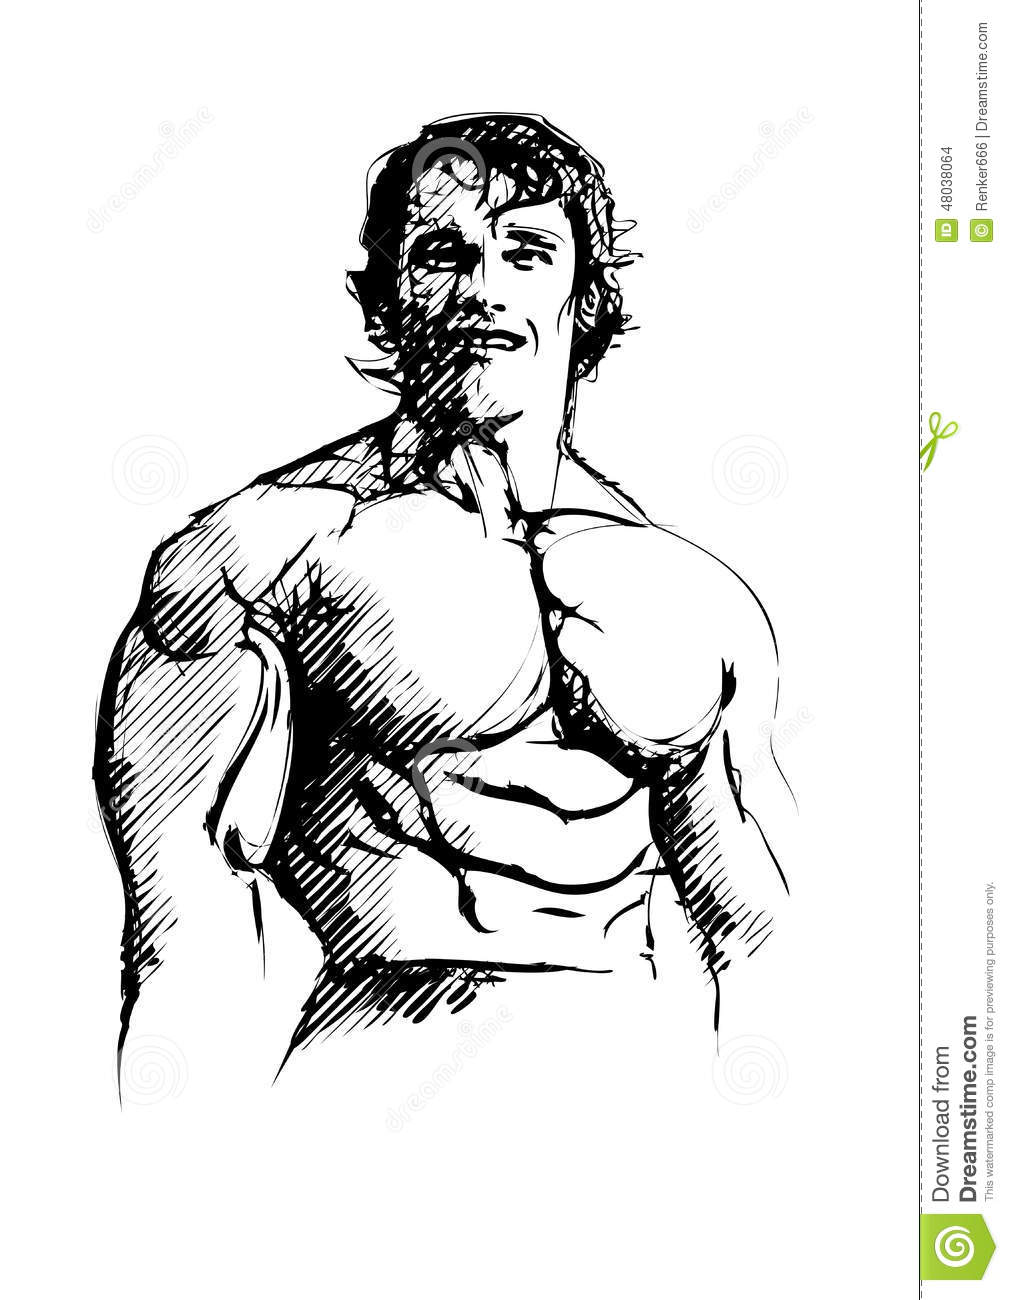 Arnold Schwarzenegger Stock Illustrations u2013 5 Arnold Schwarzenegger Stock  Illustrations, Vectors u0026 Clipart - Dreamstime